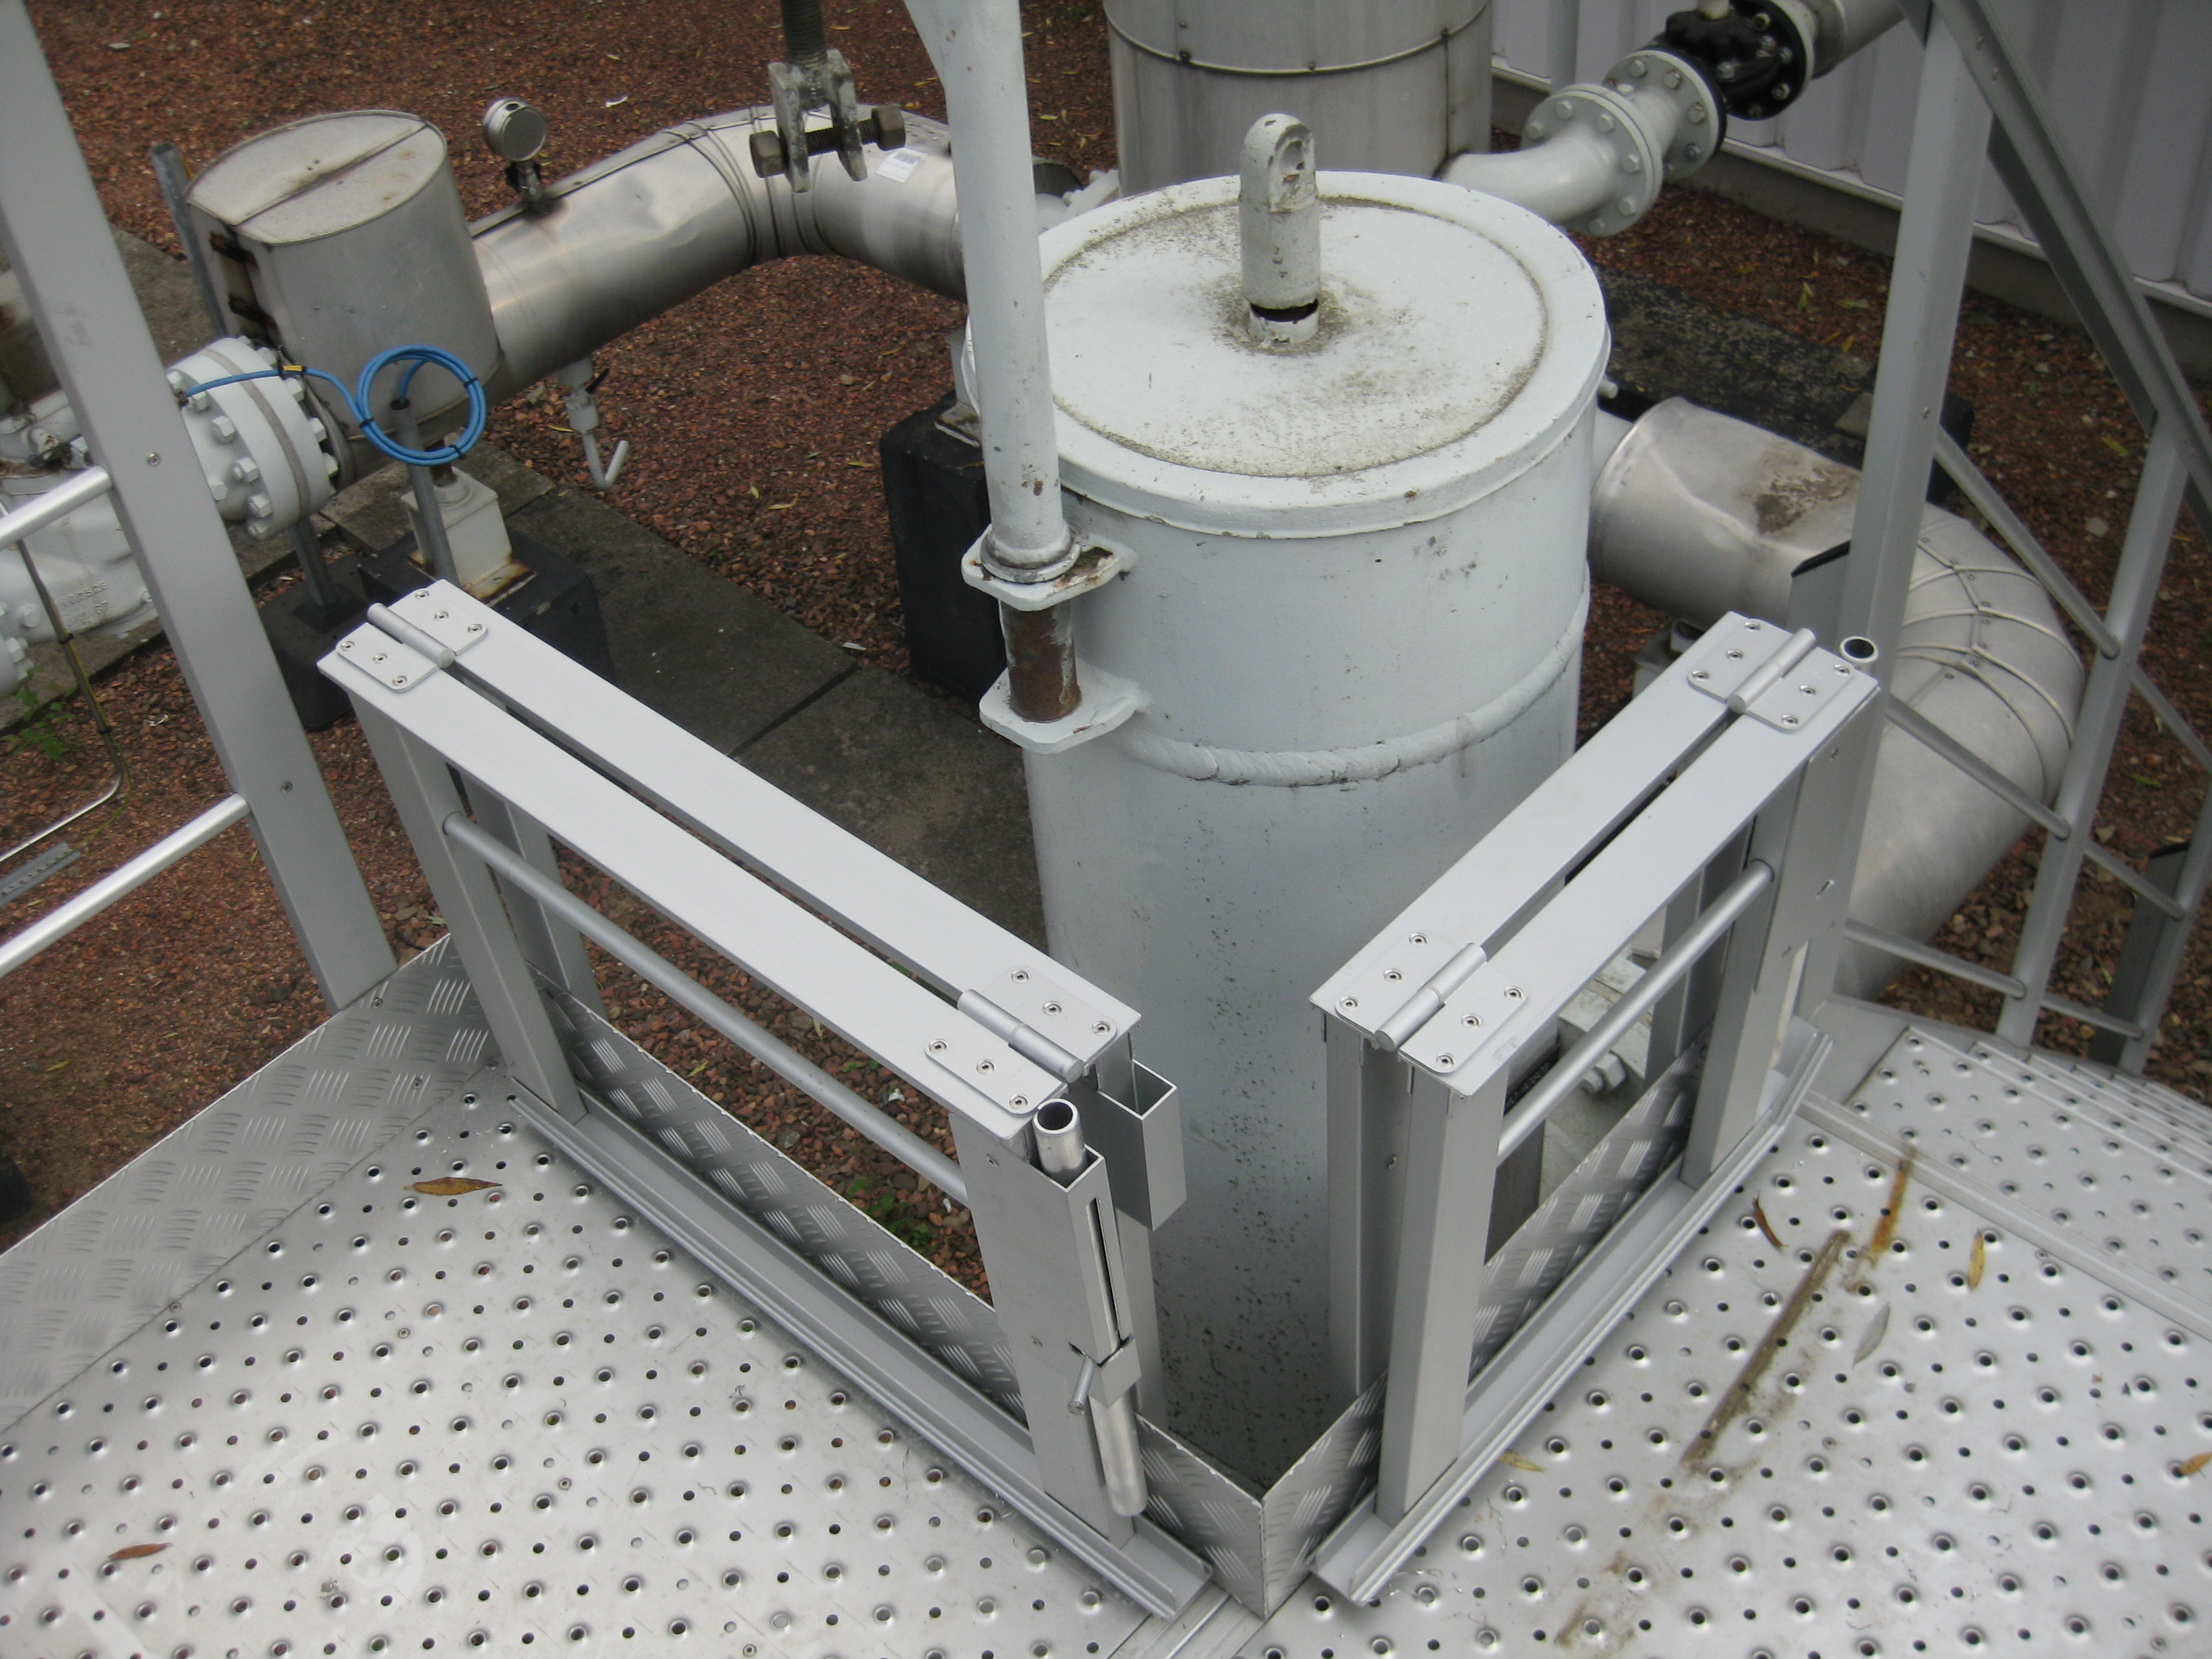 Guard rails around a filter in down position